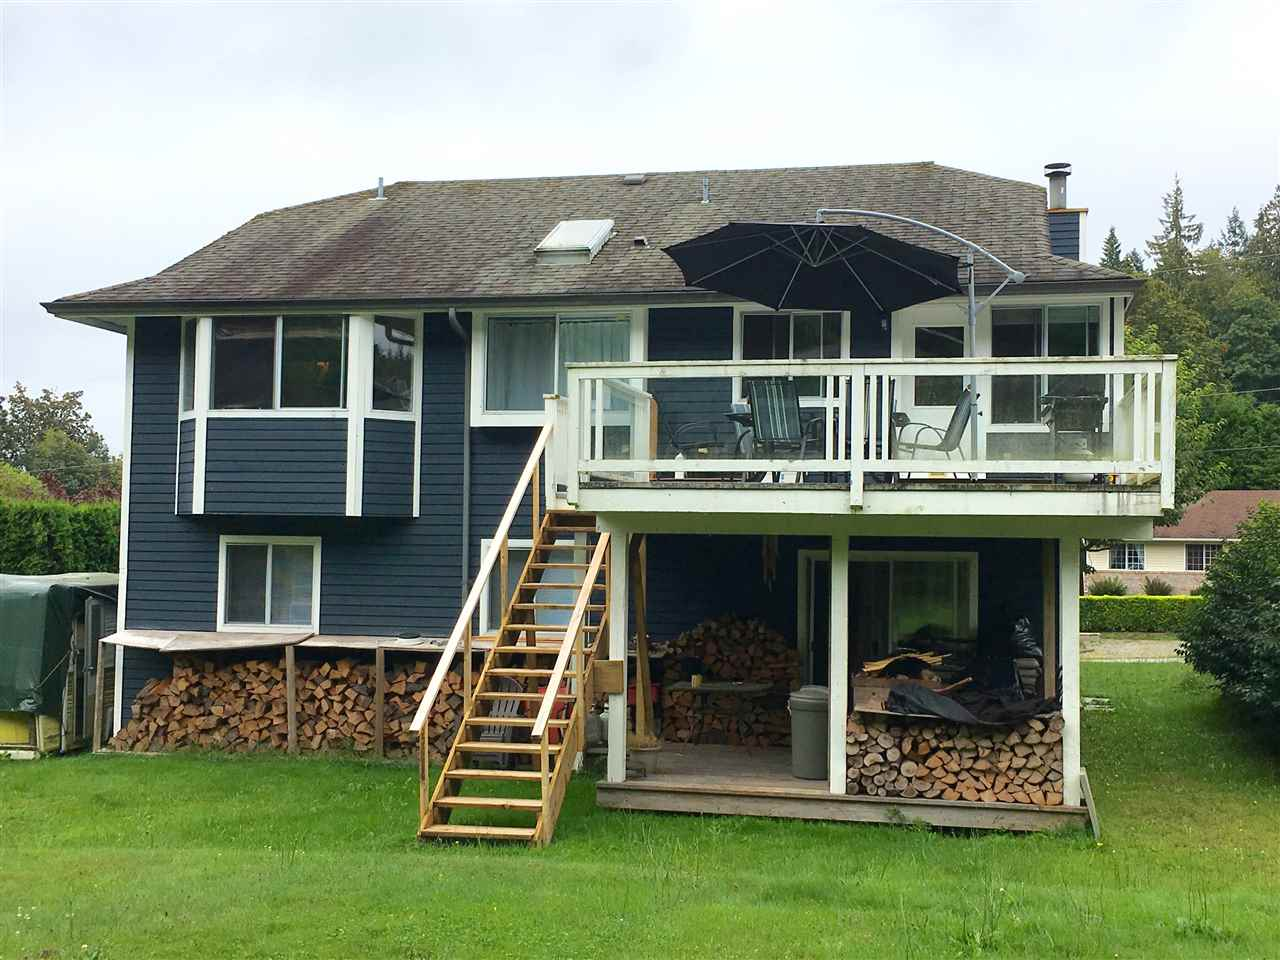 Photo 2: Photos: 1735 JENSEN Road in Gibsons: Gibsons & Area House for sale (Sunshine Coast)  : MLS® # R2098753